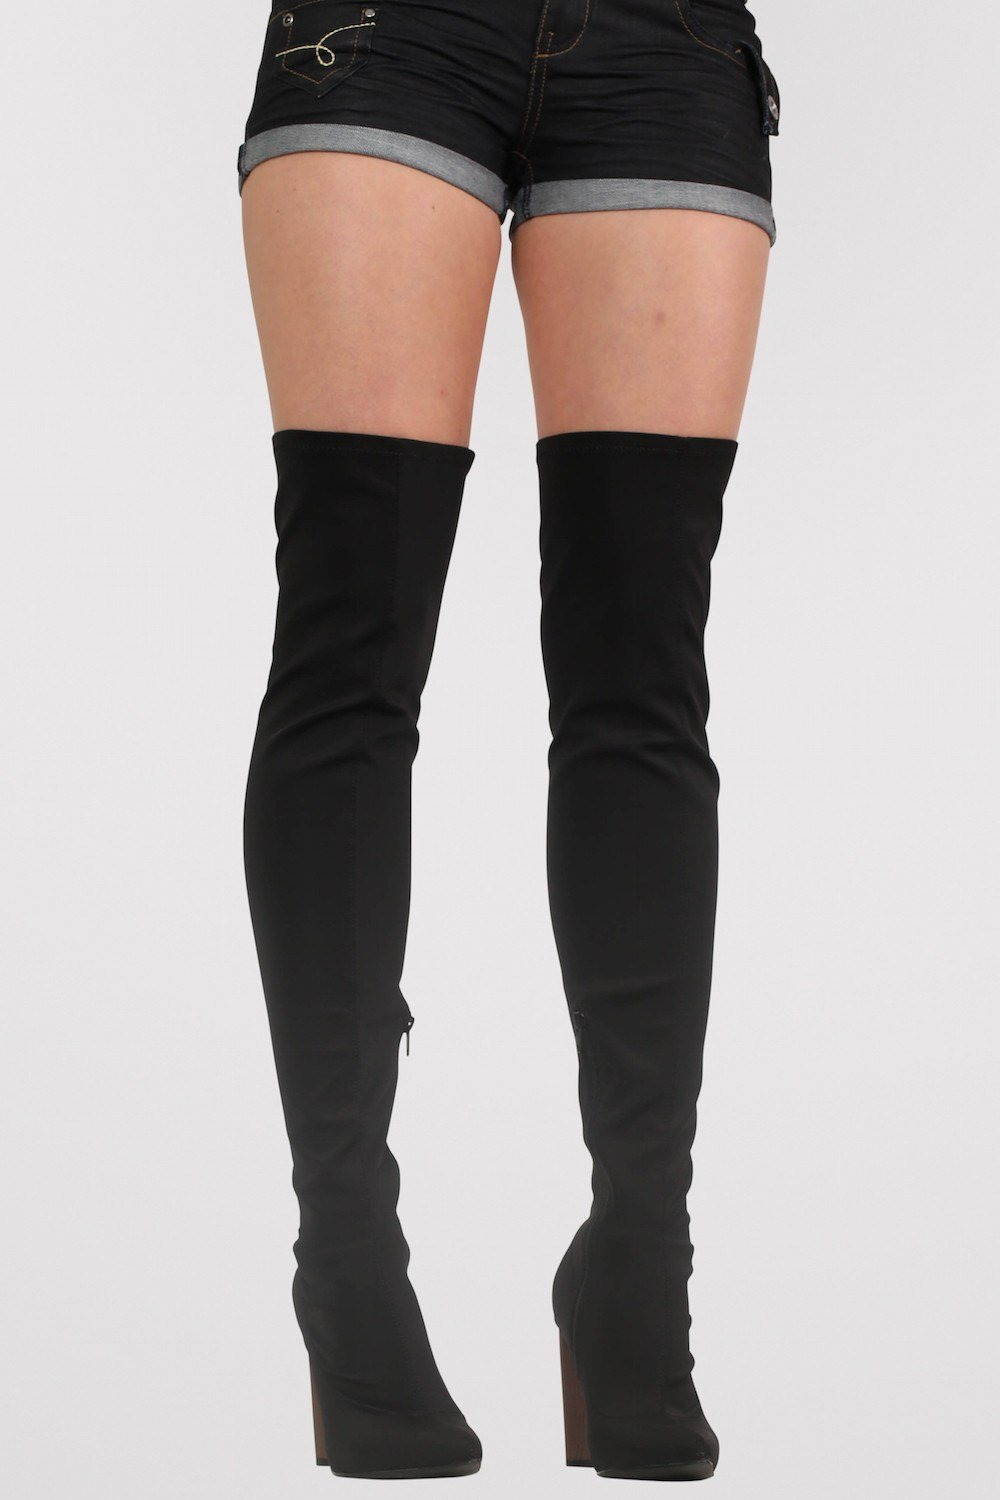 55fa33f9587 Over The Knee High Heeled Neoprene Boots in Black